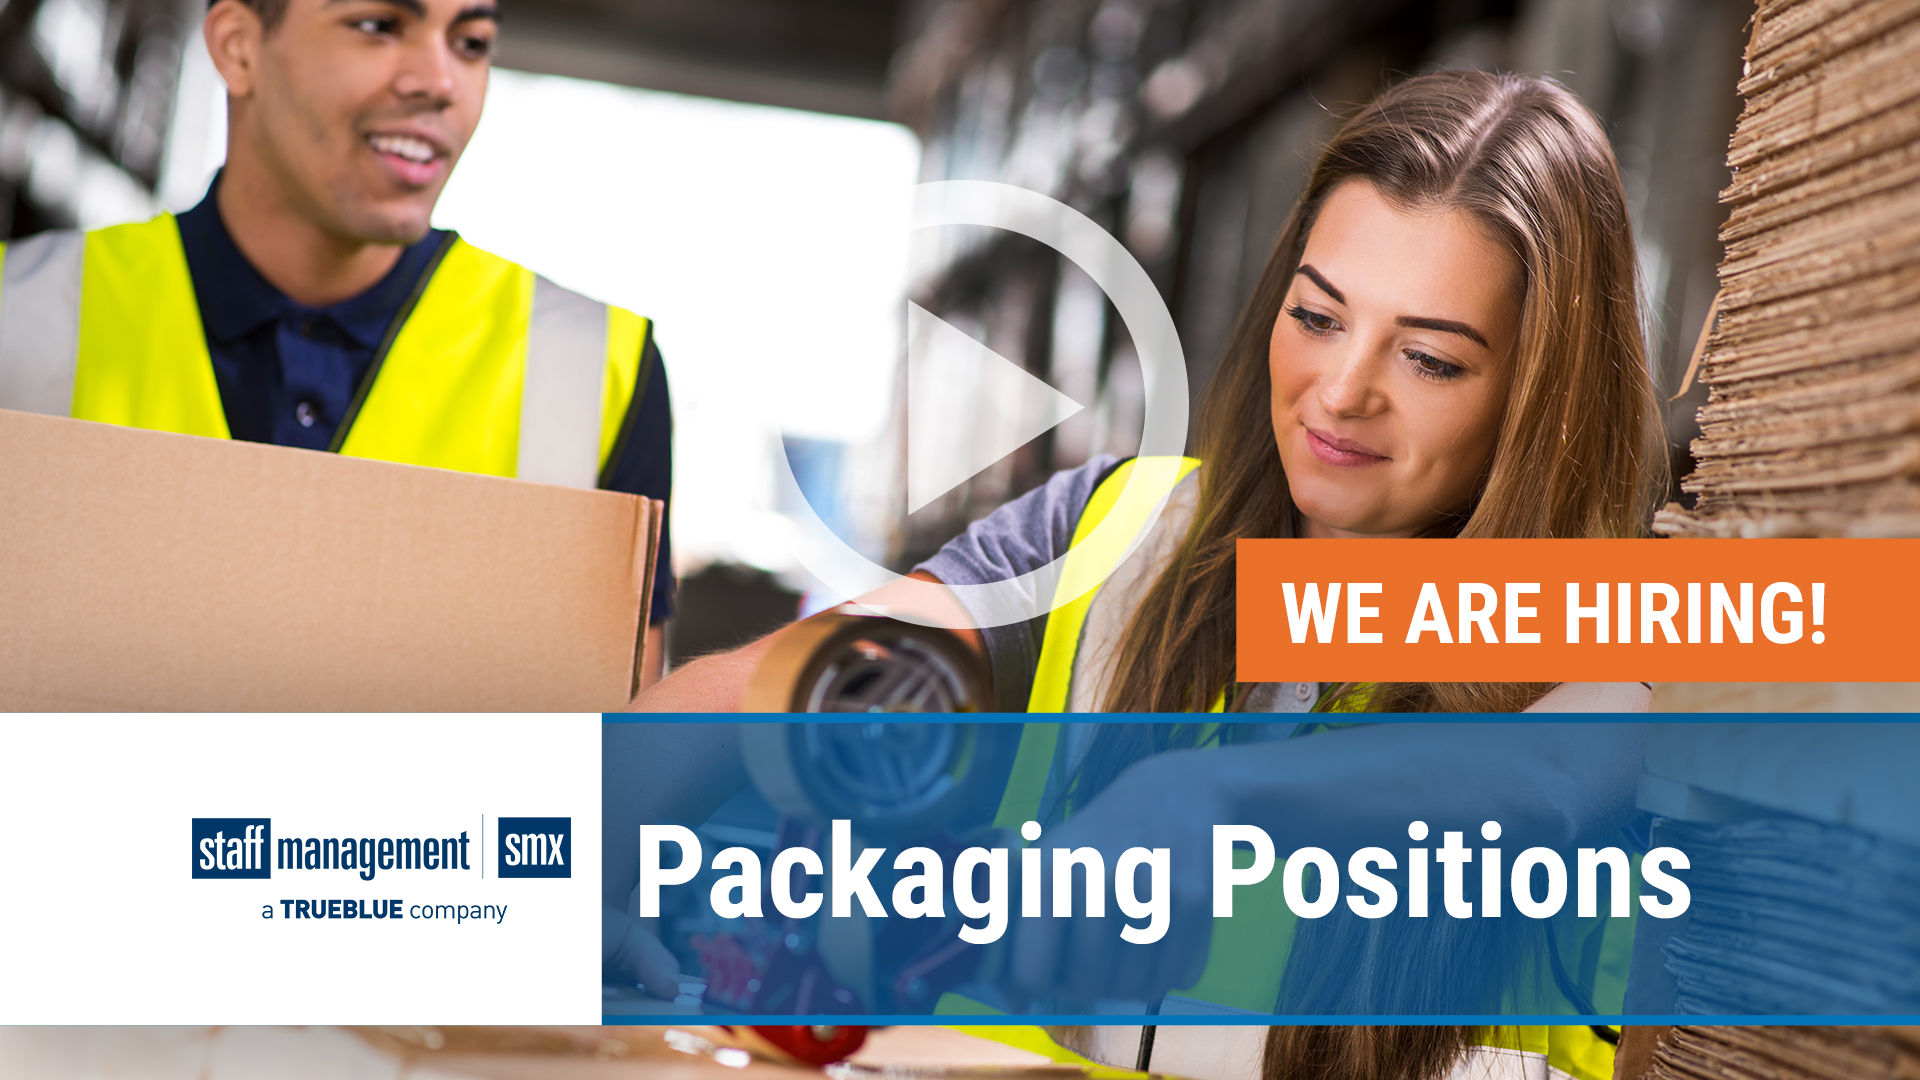 Watch our careers video for available job opening Seeking Hardworking Individuals for Packaging Positions in Asheboro, NC